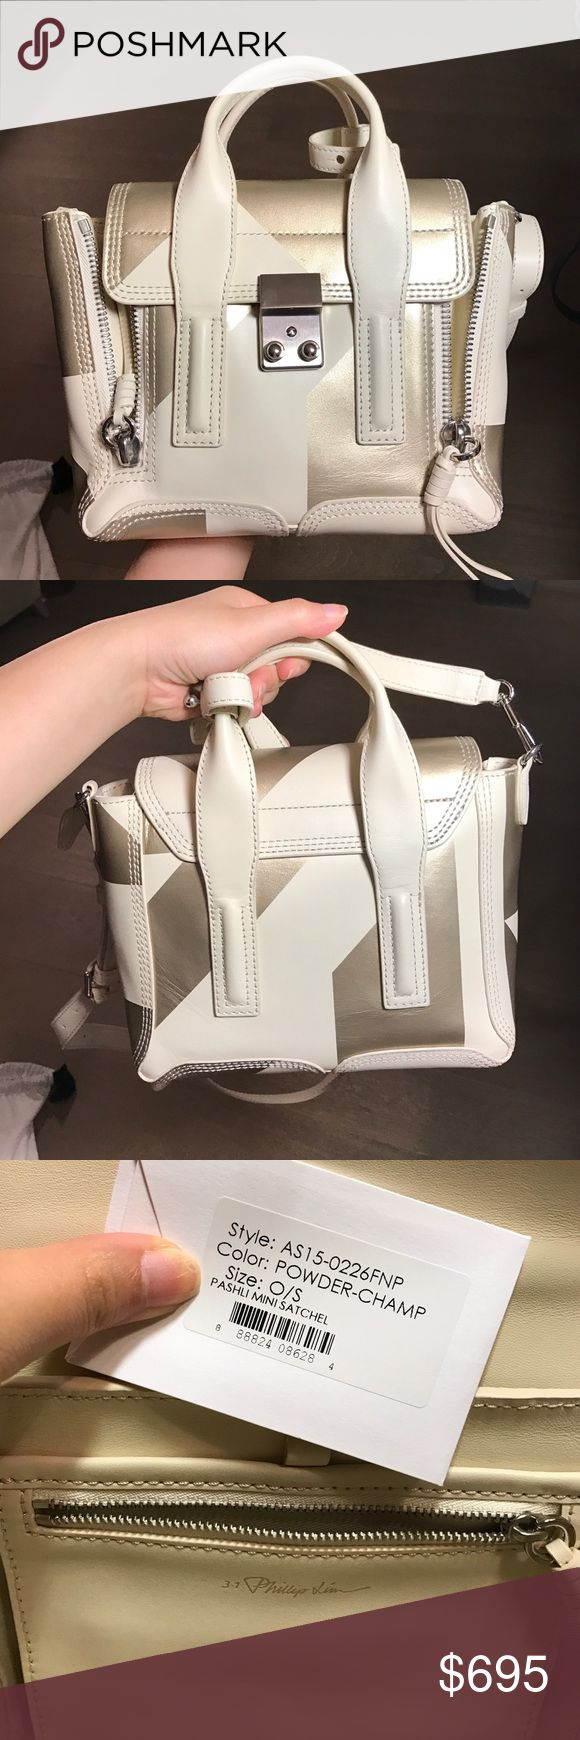 3.1 Phillip Lim Pashli Mini Satchel Height: 7in / 18 cm Length: 9 in / 23 cm Depth: 3.5 in / 9cm Strap Drop: 22 in/ 56 cm  Handle Drop: 2.25 in / 6cm  Color: Powder Champ Condition: Brand New Comes with dust bag Cheaper on merc (600 plus shipping). 3.1 Phillip Lim Bags